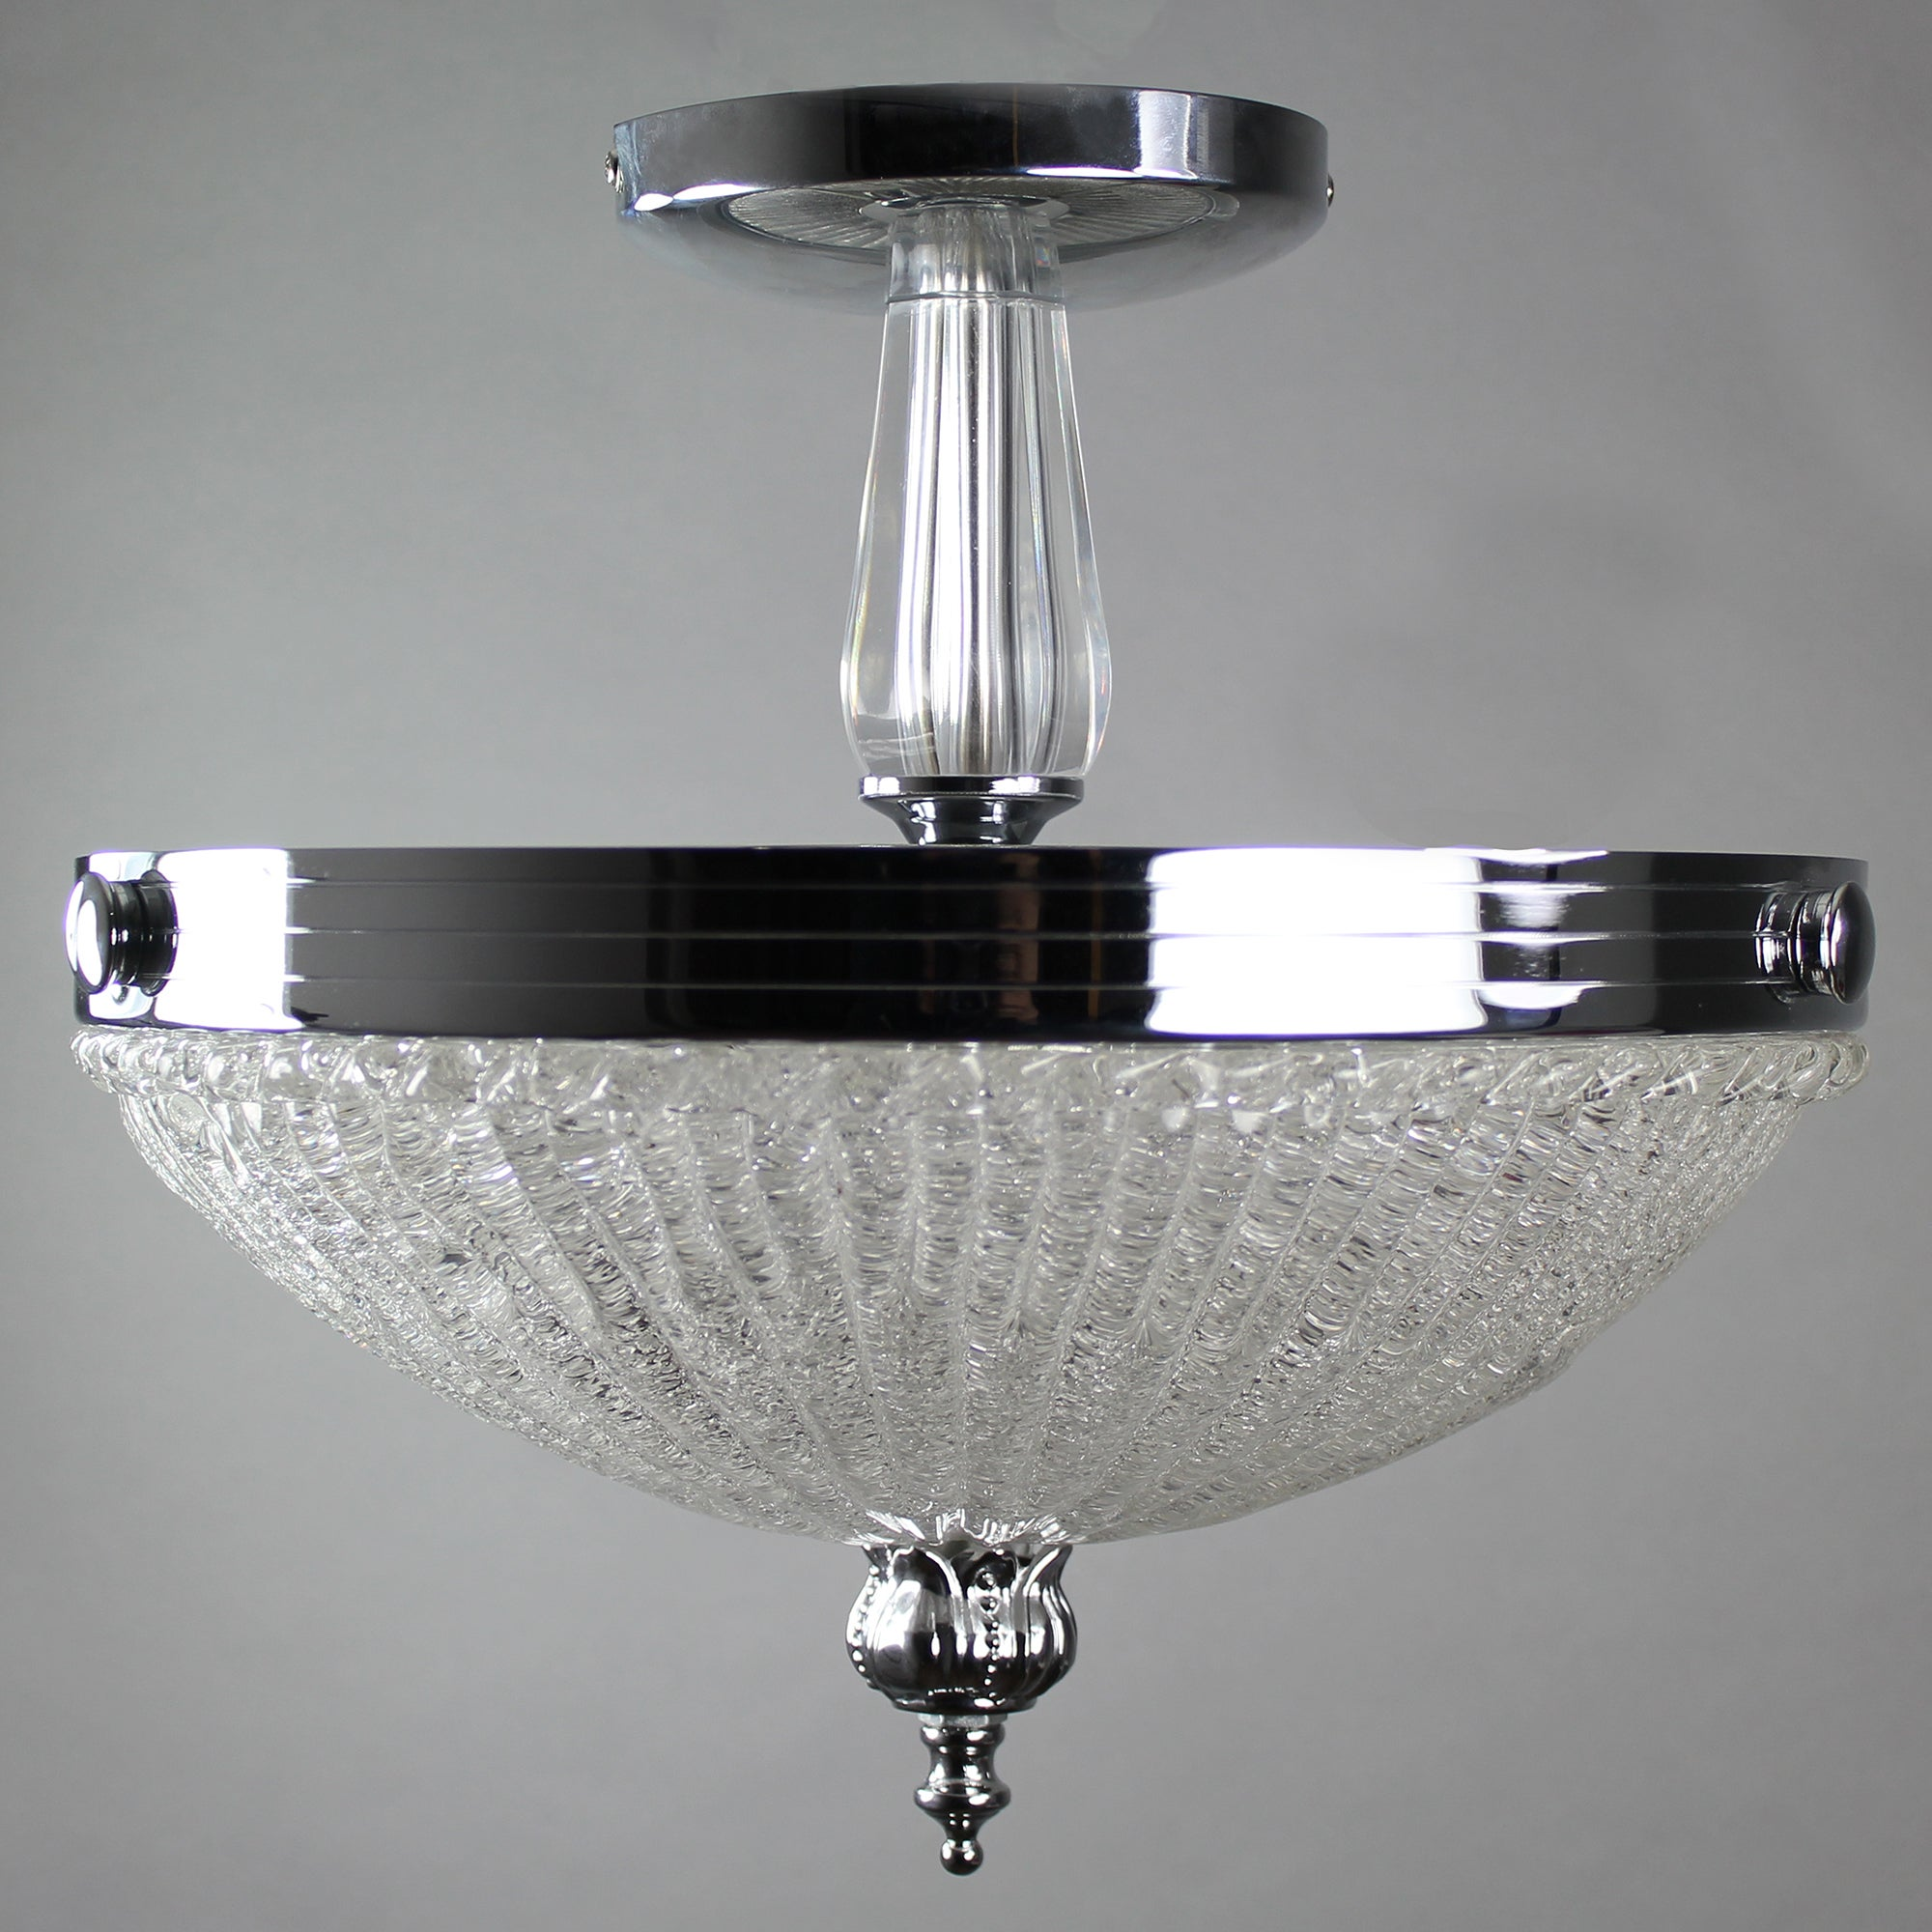 Marble Bowl Frost Fitting Chrome